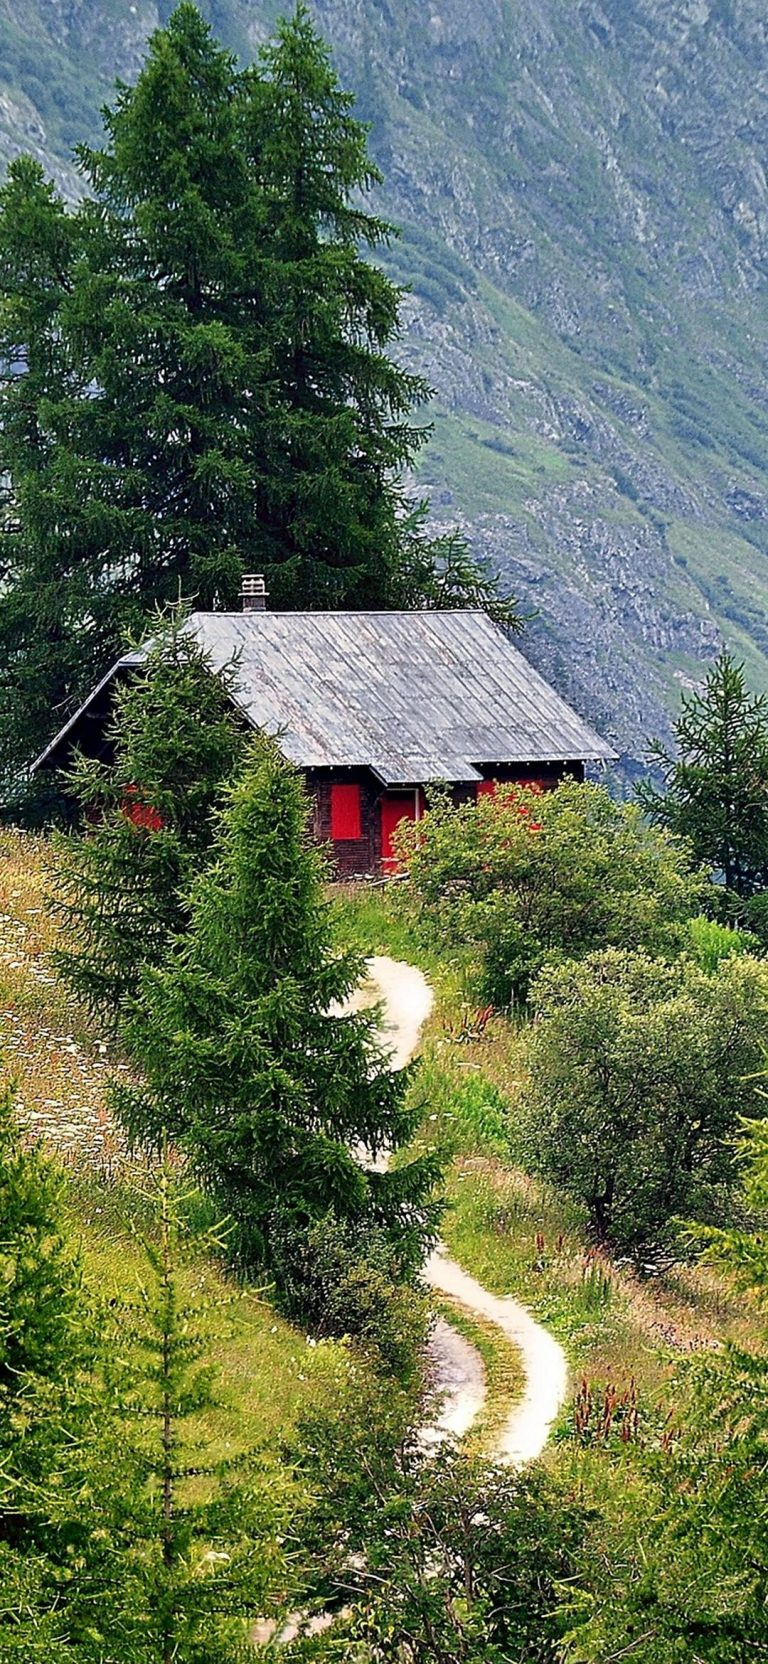 Alps Mountains Trees Road House 1080x2340 768x1664